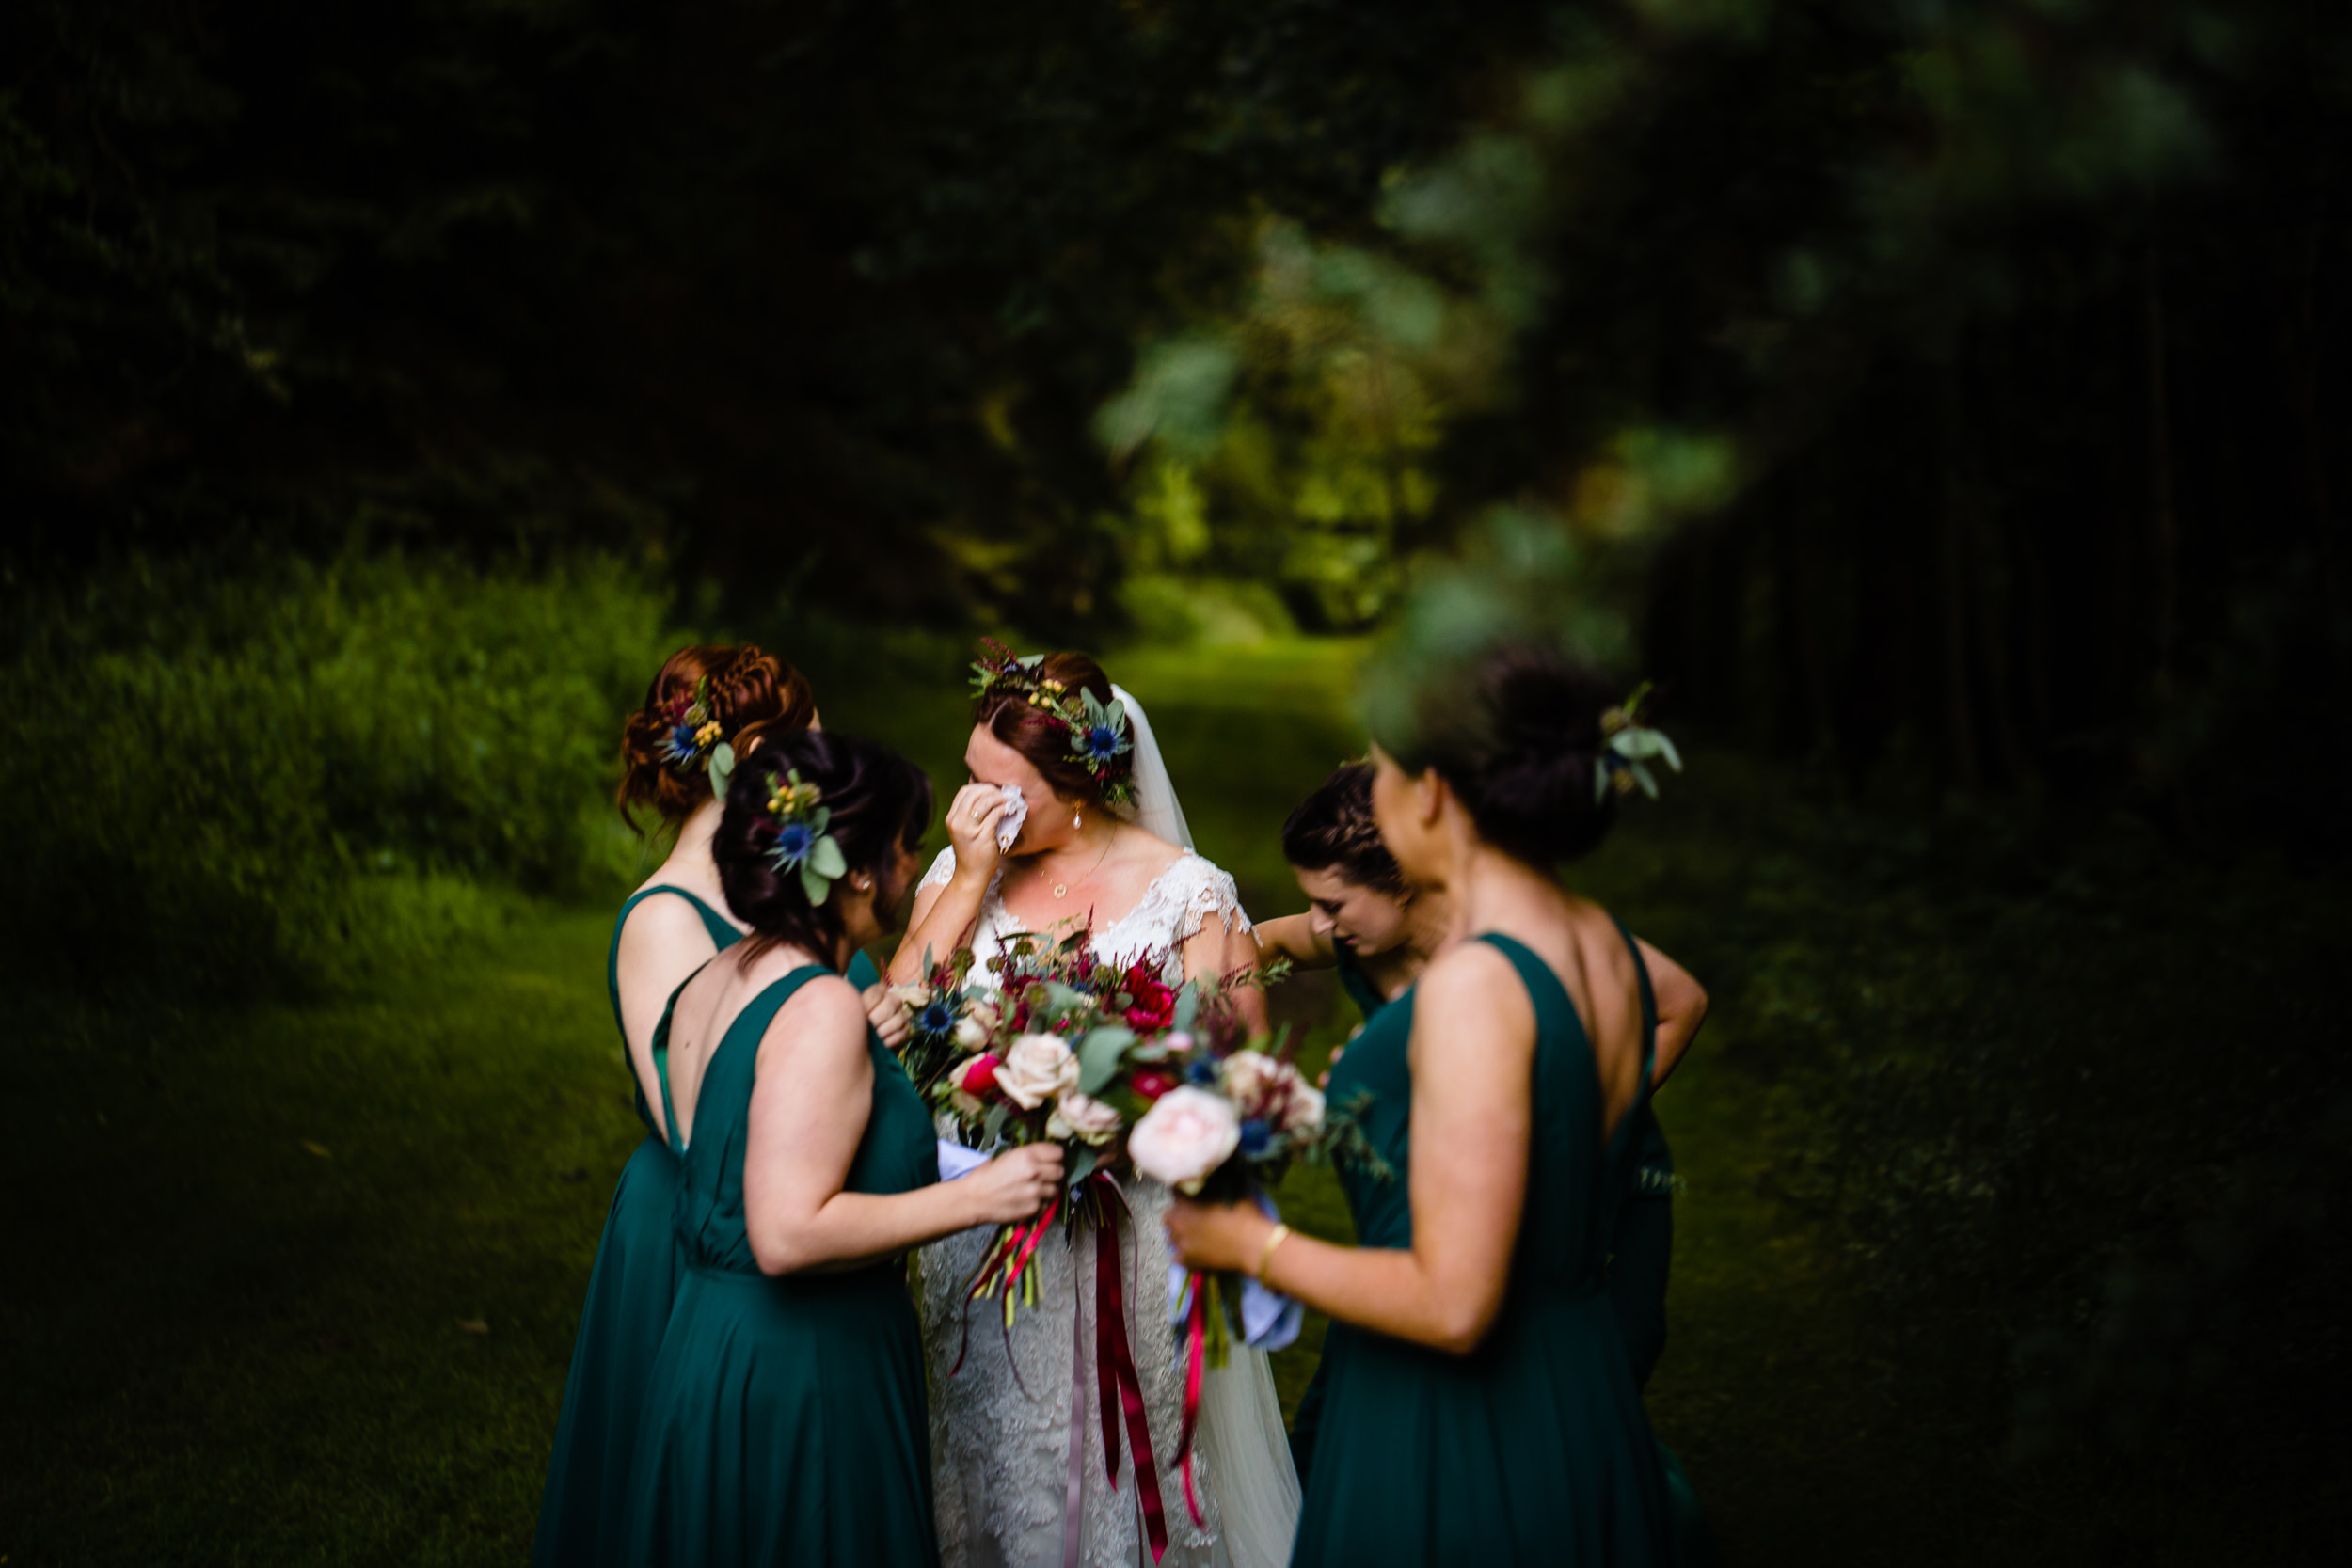 tearful bride with bridesmaids. scotland wedding photography by emma and rich.